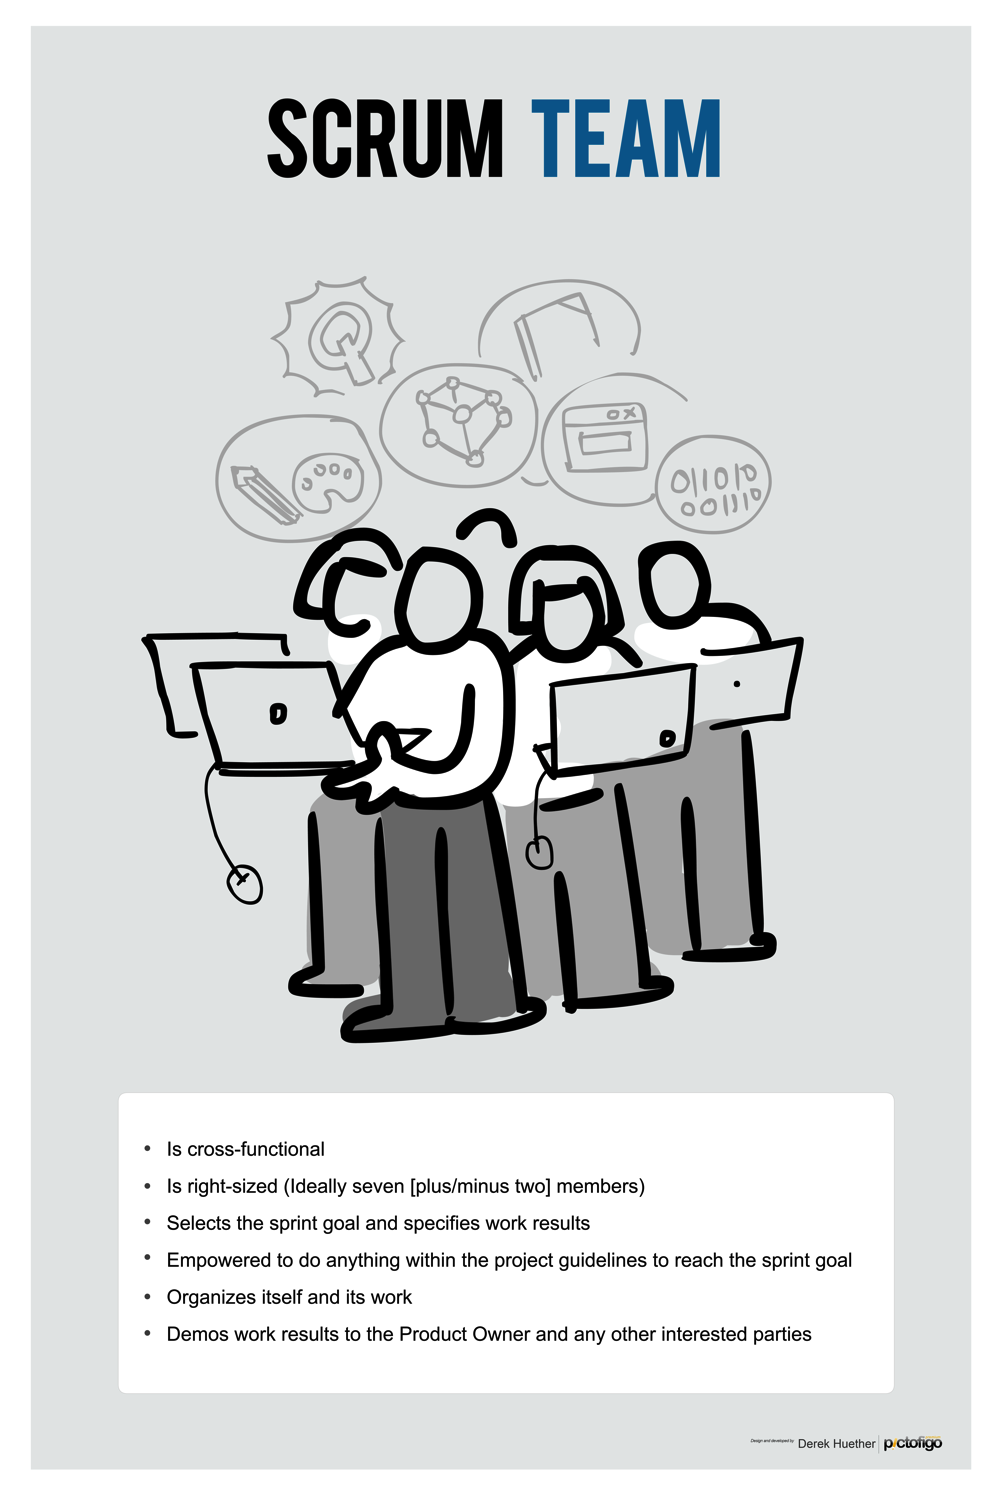 Scrum Team - What are the attributes of a Scrum Team? Perfect for dressing up any wall, or instantly creating a theme for a room. Images look great on this high-quality poster.Available in 11